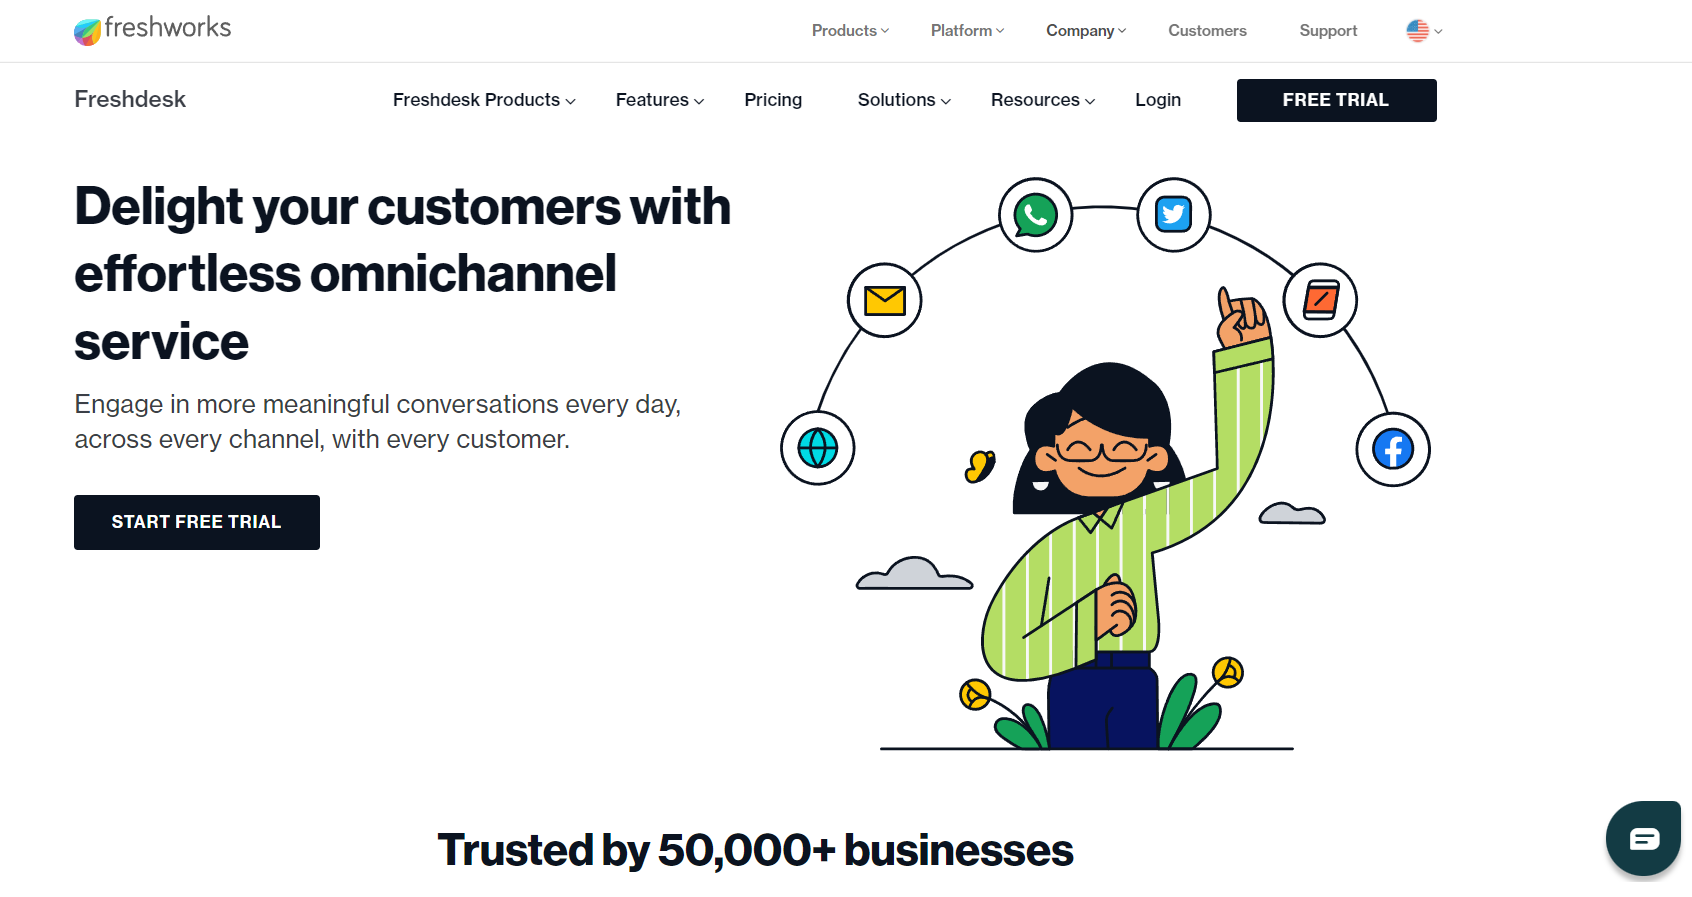 Freshworks homepage: Delight your customers with effortless omnichannel service